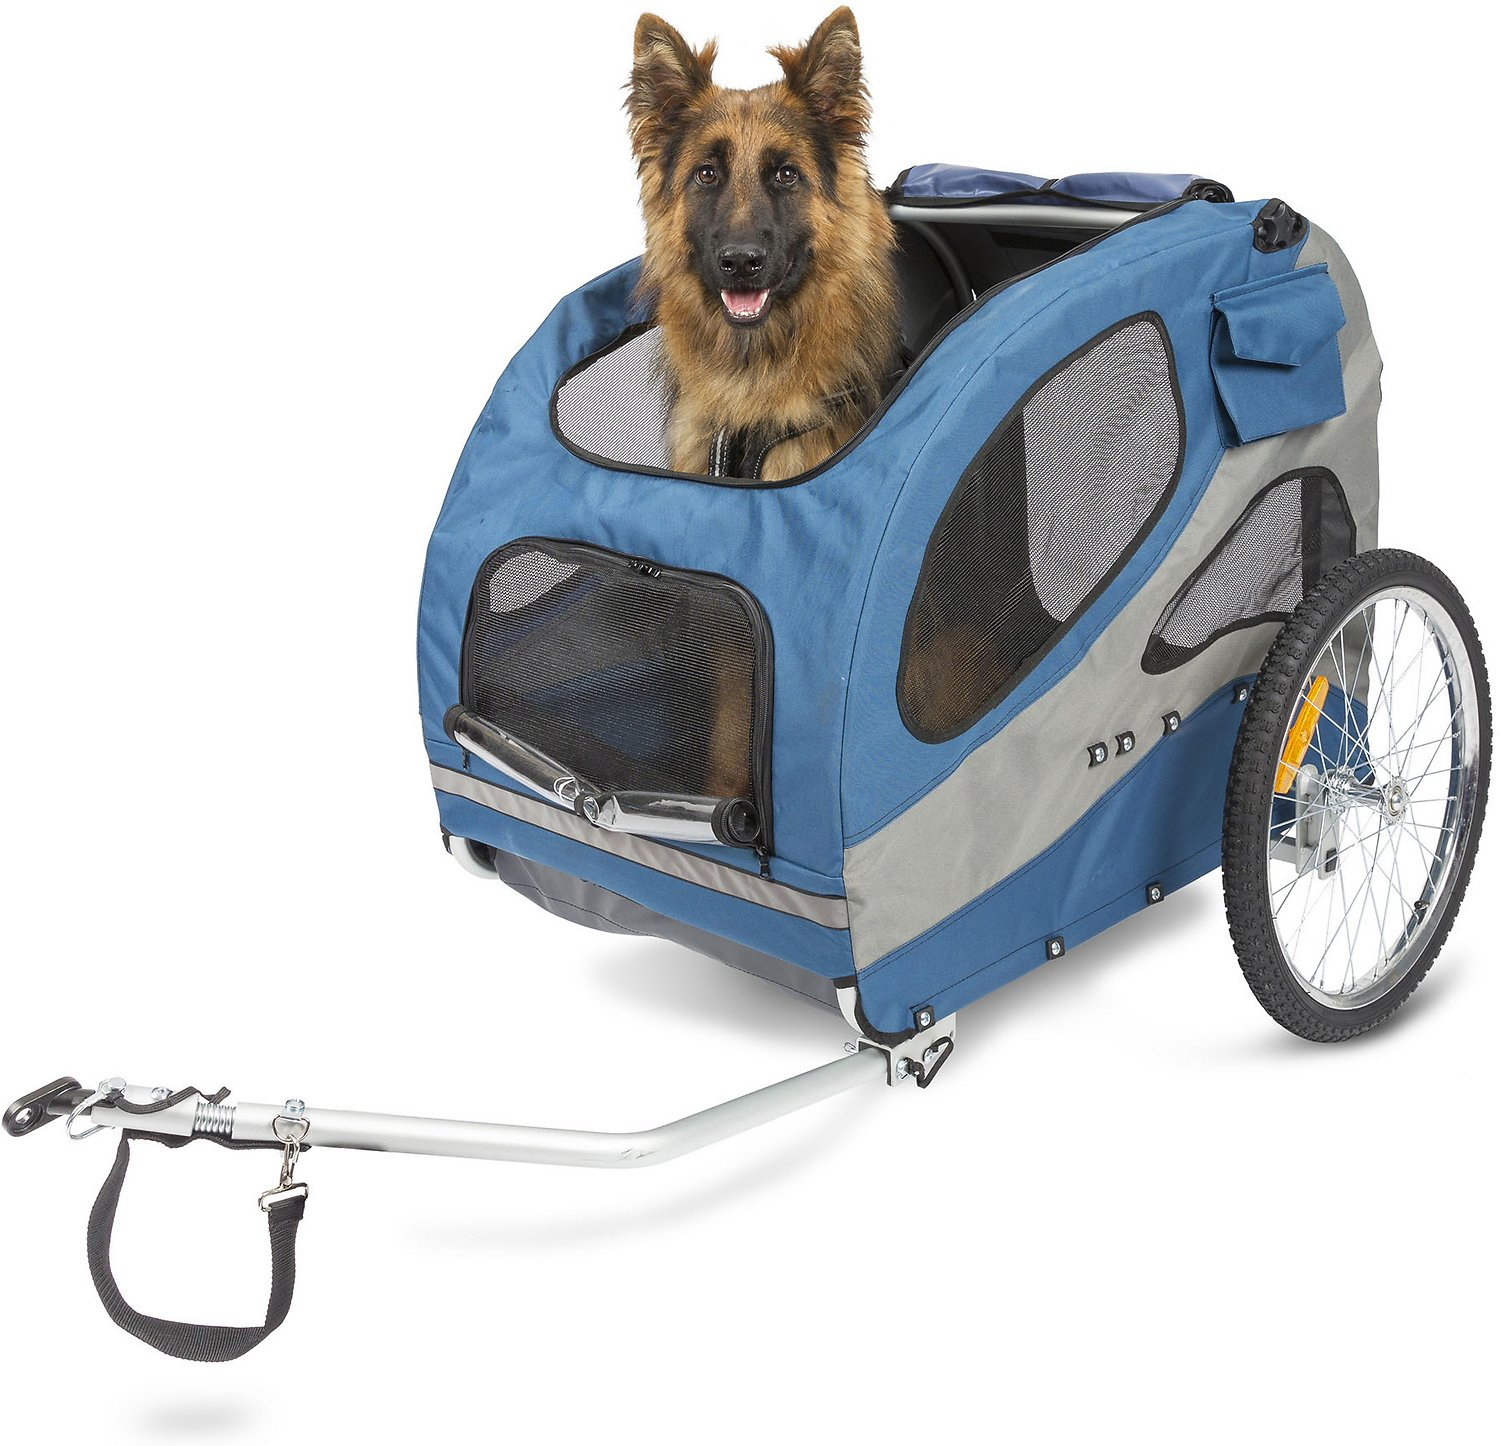 Solvit Houndabout Ii Aluminum Bicycle Trailer Large